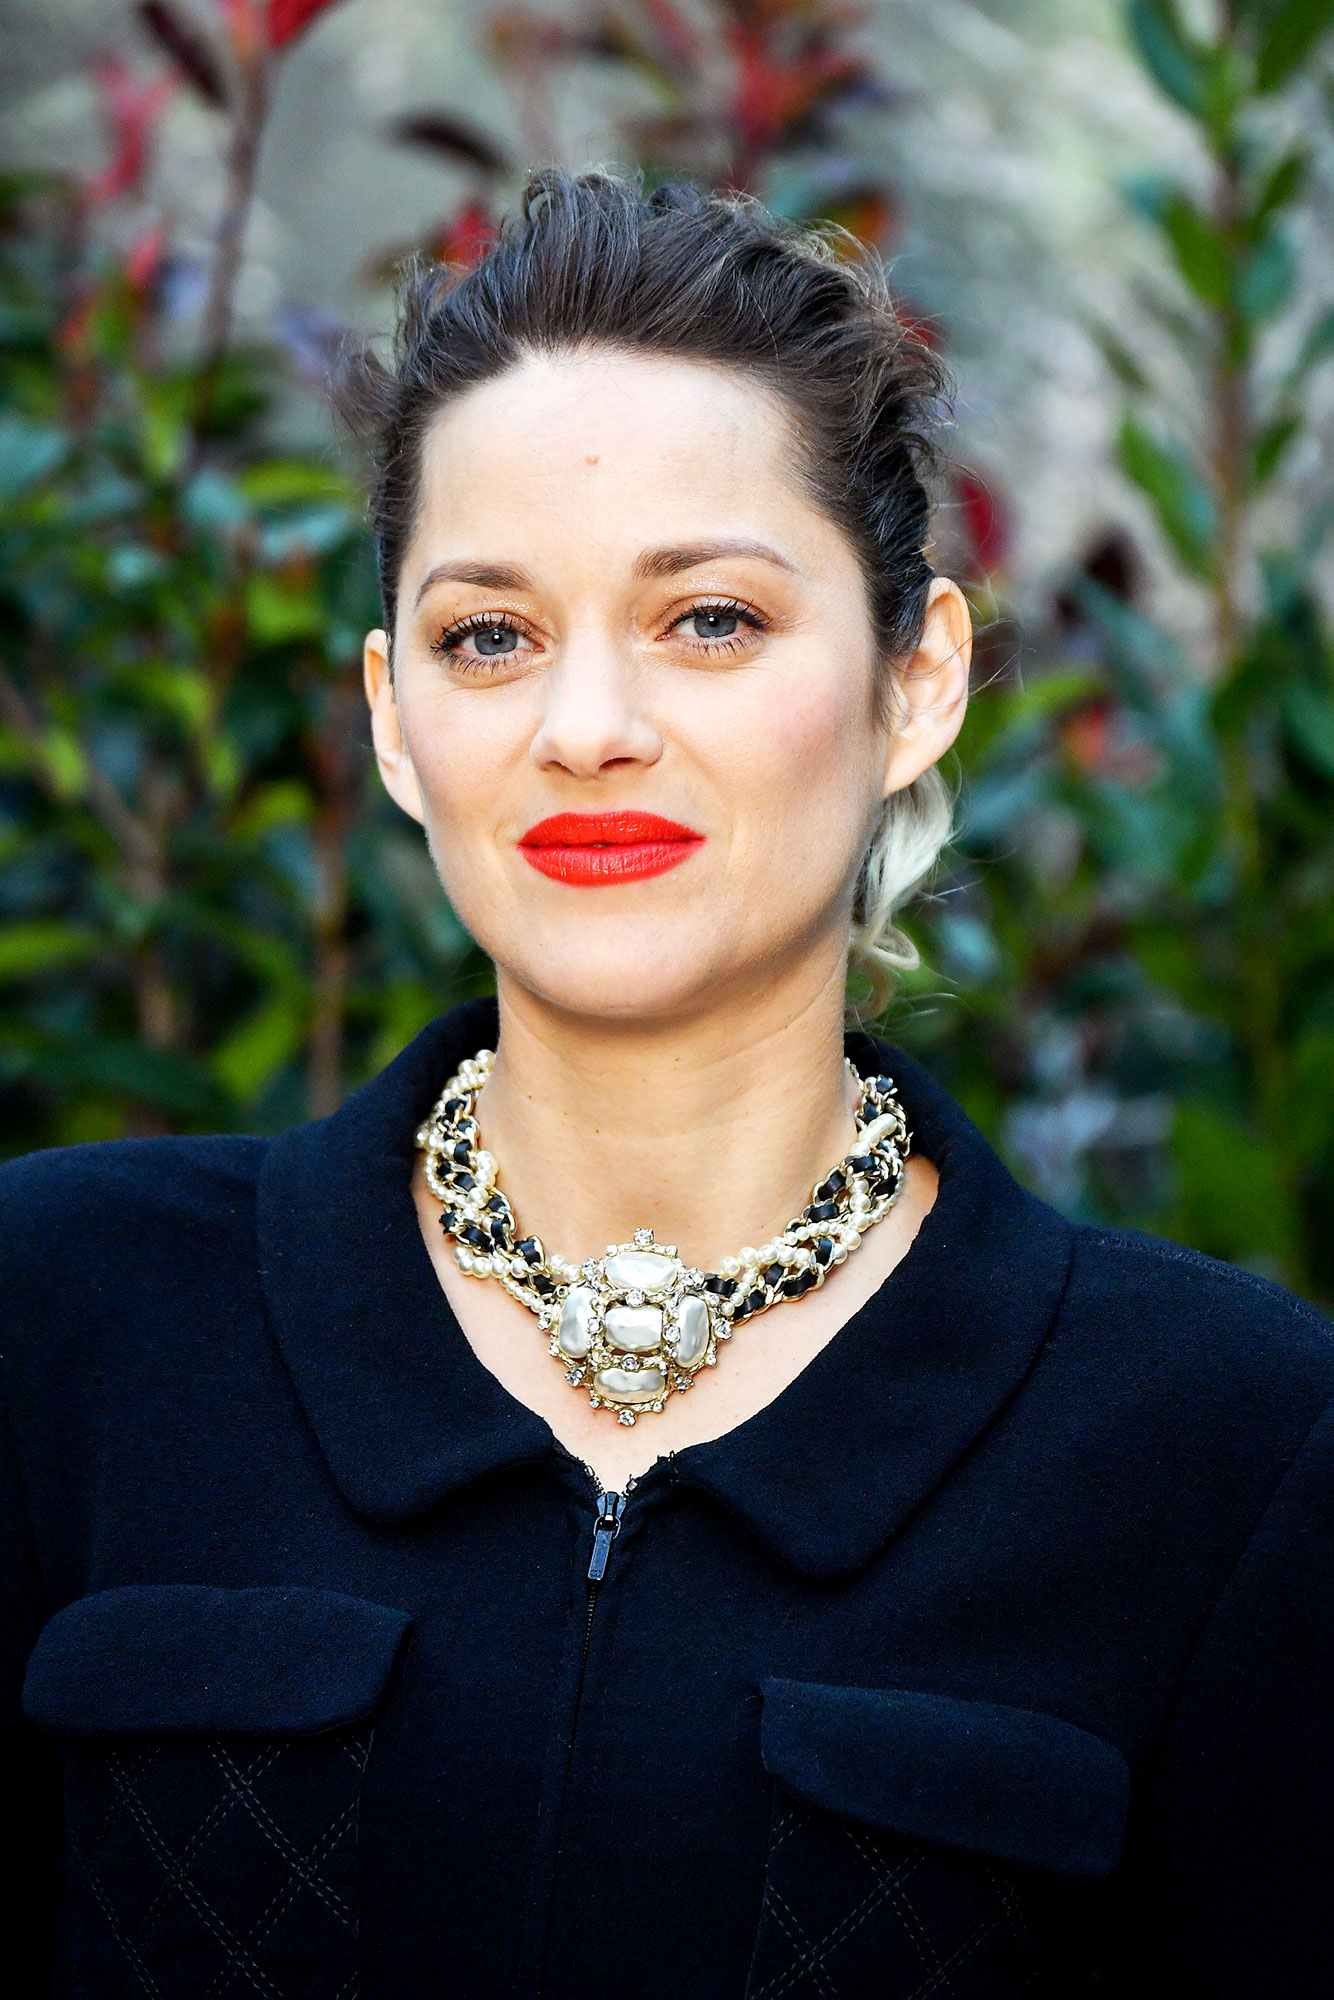 Marion Cotillard - Offering a masterclass in French-girl beauty at the Chanel Haute Couture show in Paris, the Academy Award-winner rocked glowing skin with a bright red lip that was all kinds of chic. No word on the exact shade she used, but we love the long-wear (read: kiss-proof) powers of the Chanel Rouge Allure Liquid Powder in Radical (a vibrant red-orange).